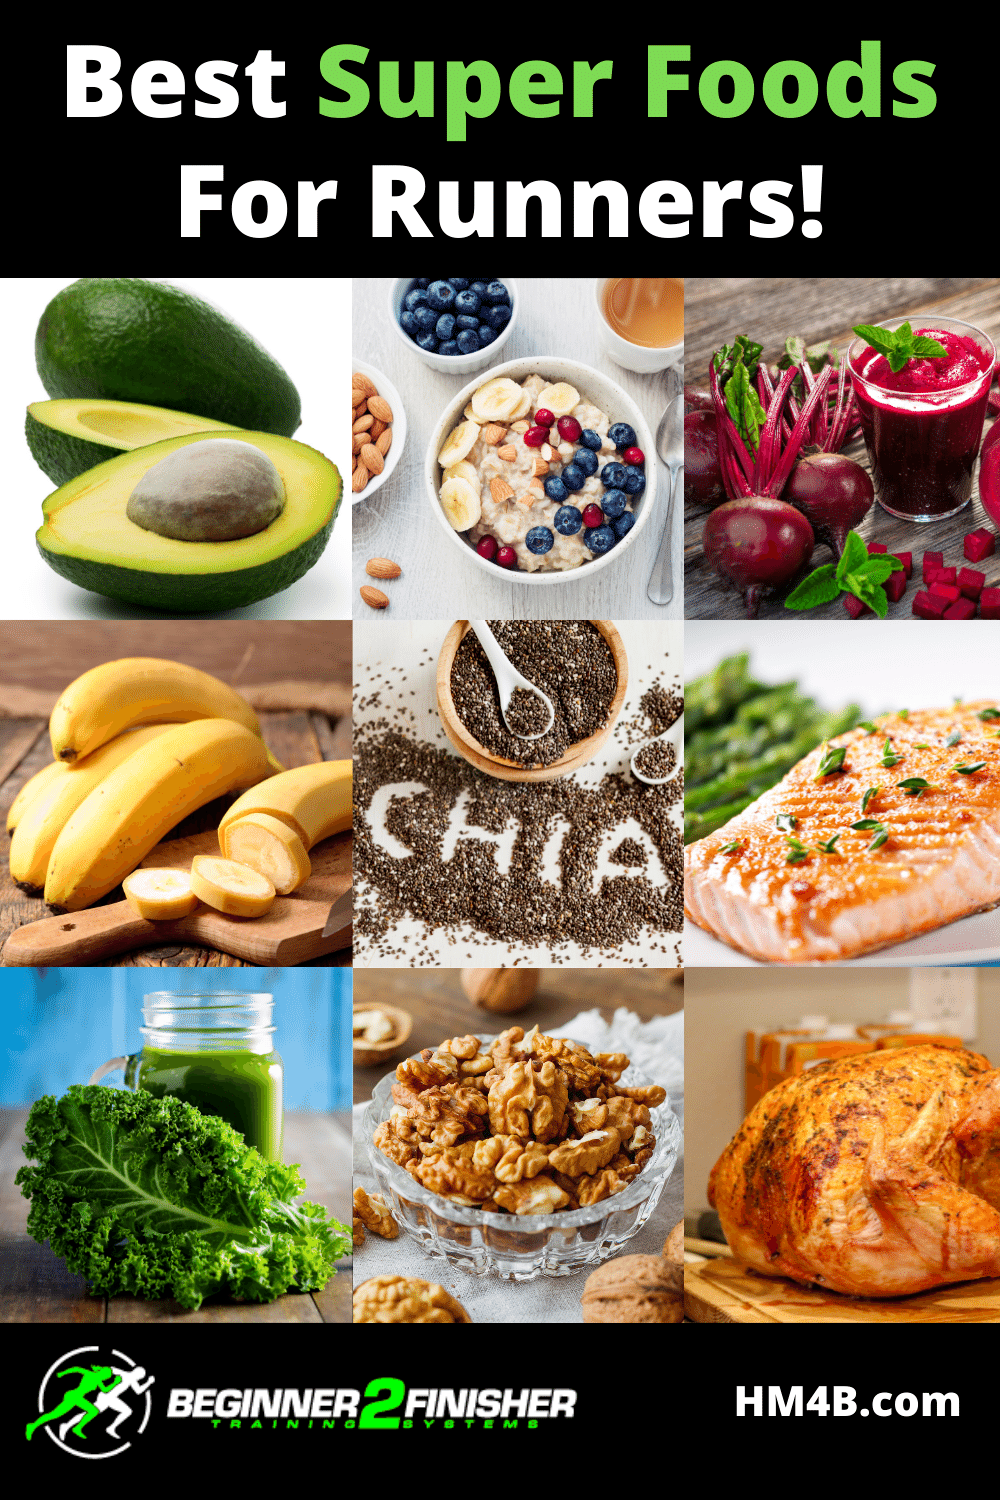 Best Super Foods For Runners